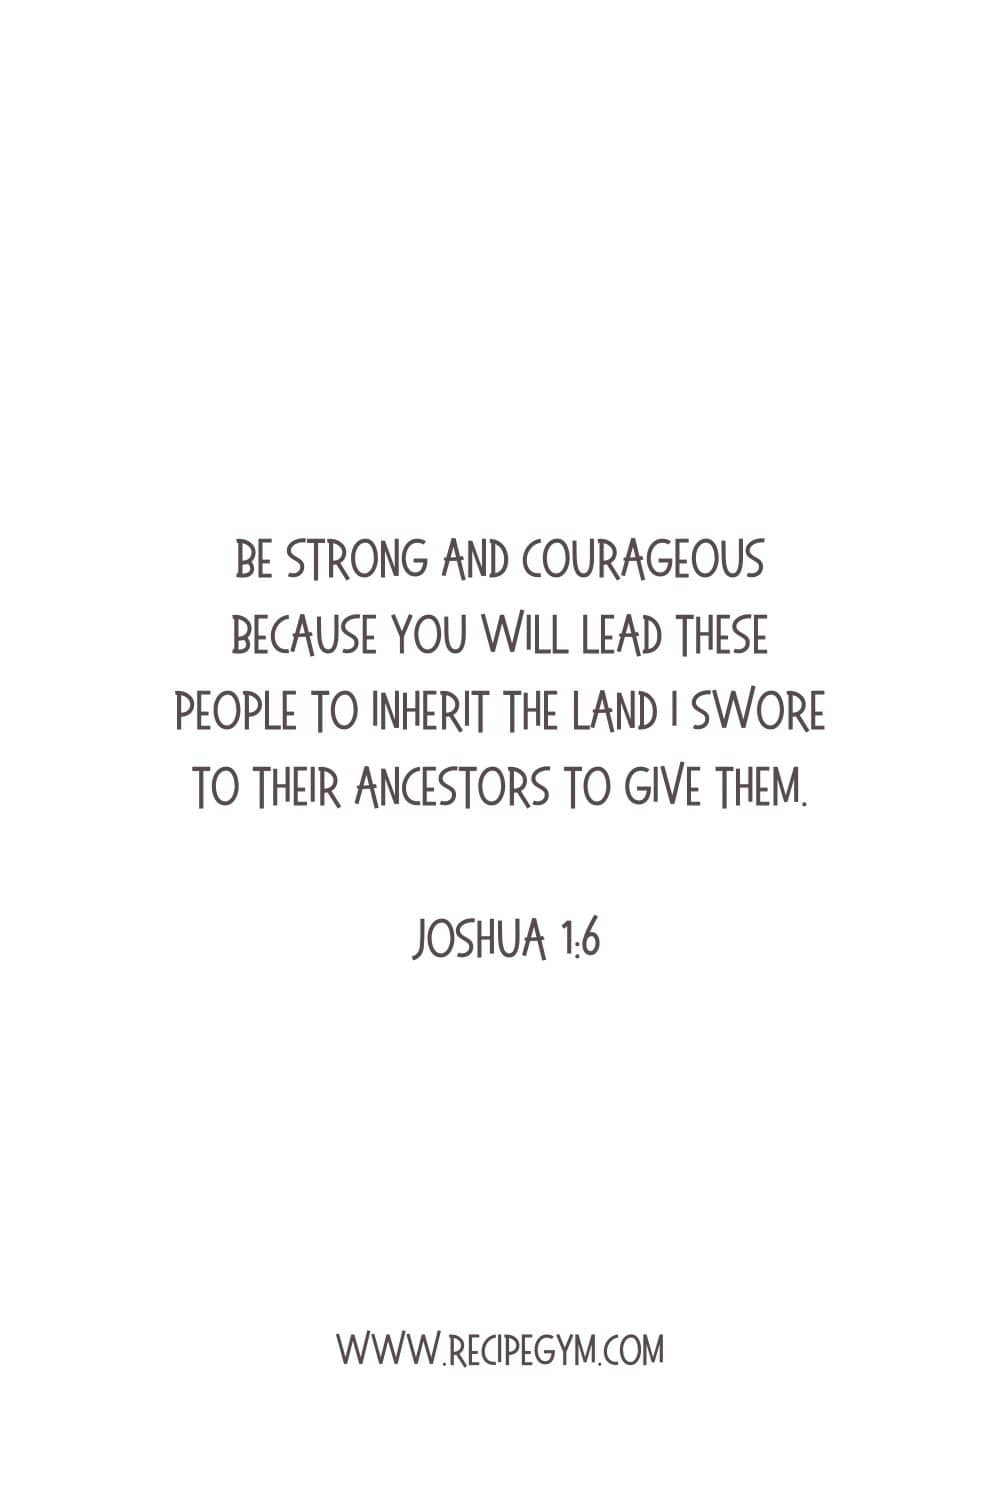 Powerful be strong and courageous bible quotes bible quotes about faith and courage bible quotes about courage